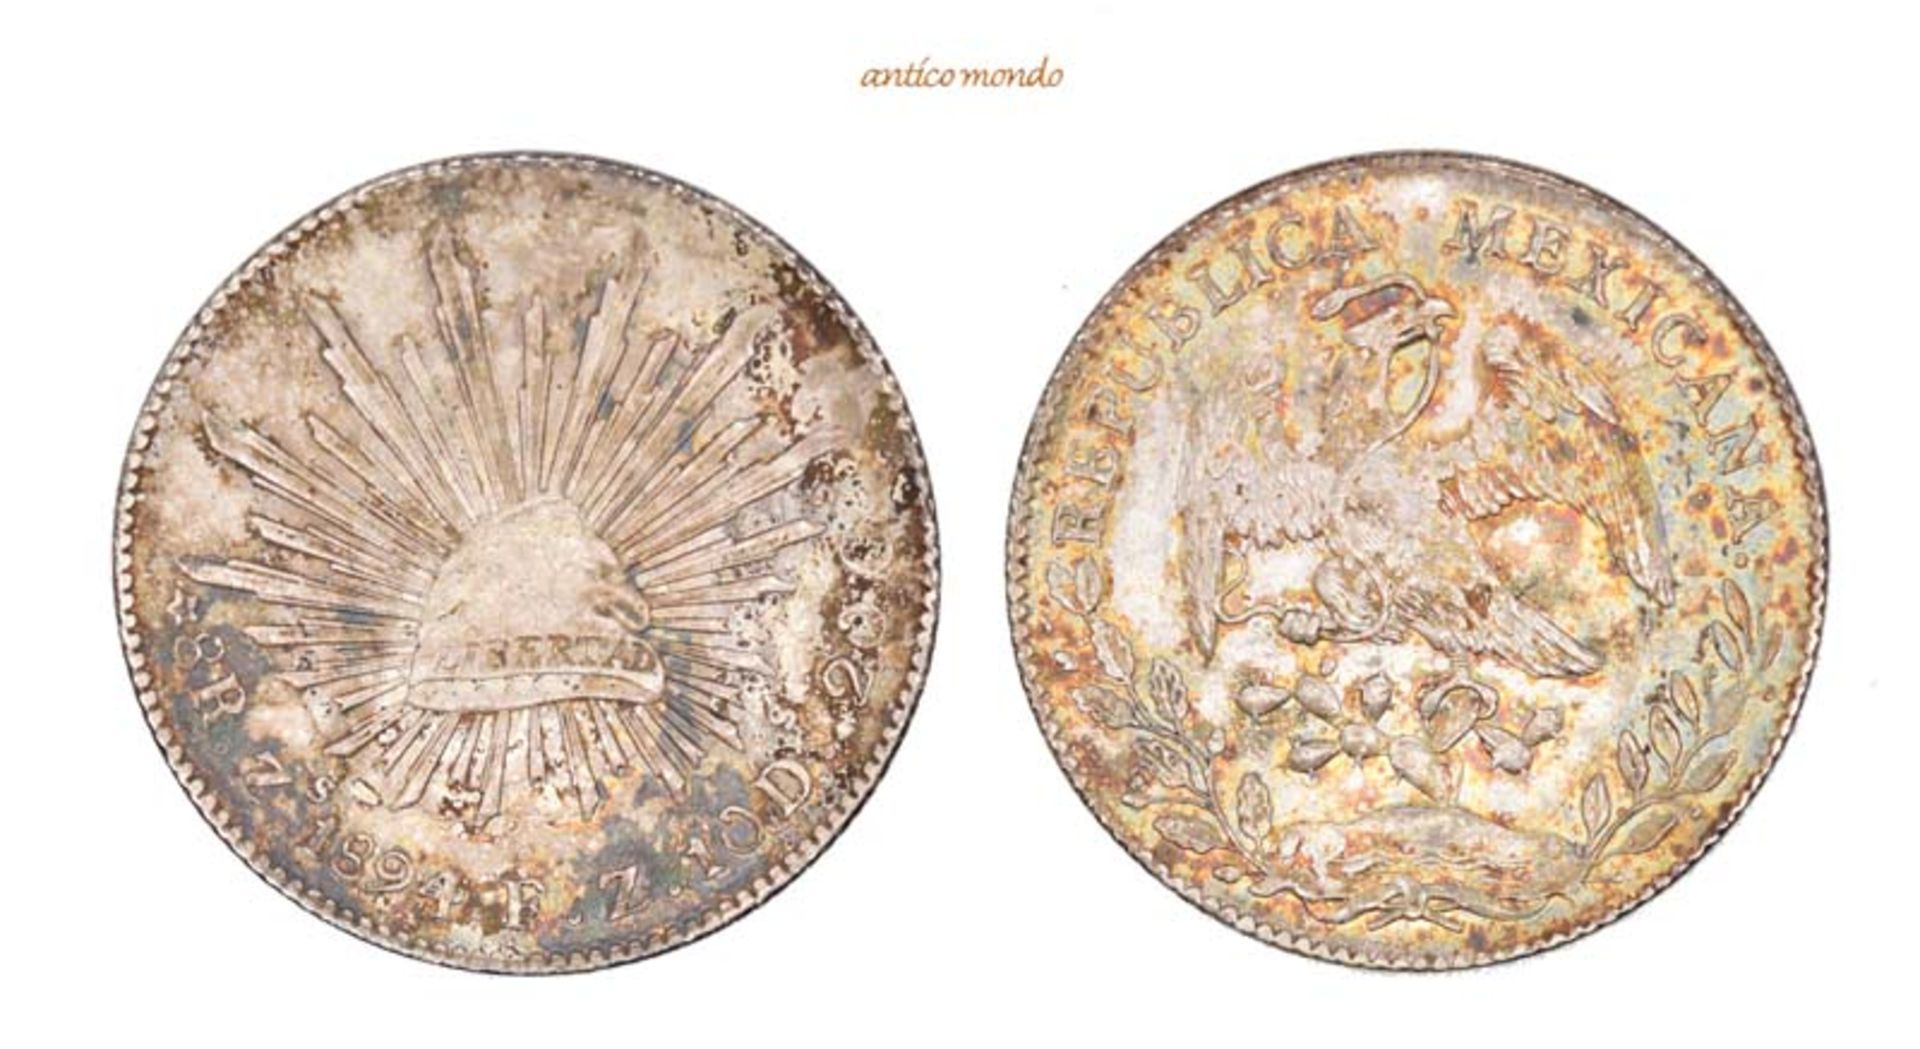 Mexiko, Republik, 8 Reales, 1894, hübsche Patina, vorzüglich, 27,06 g- - -21.50 % buyer's premium on